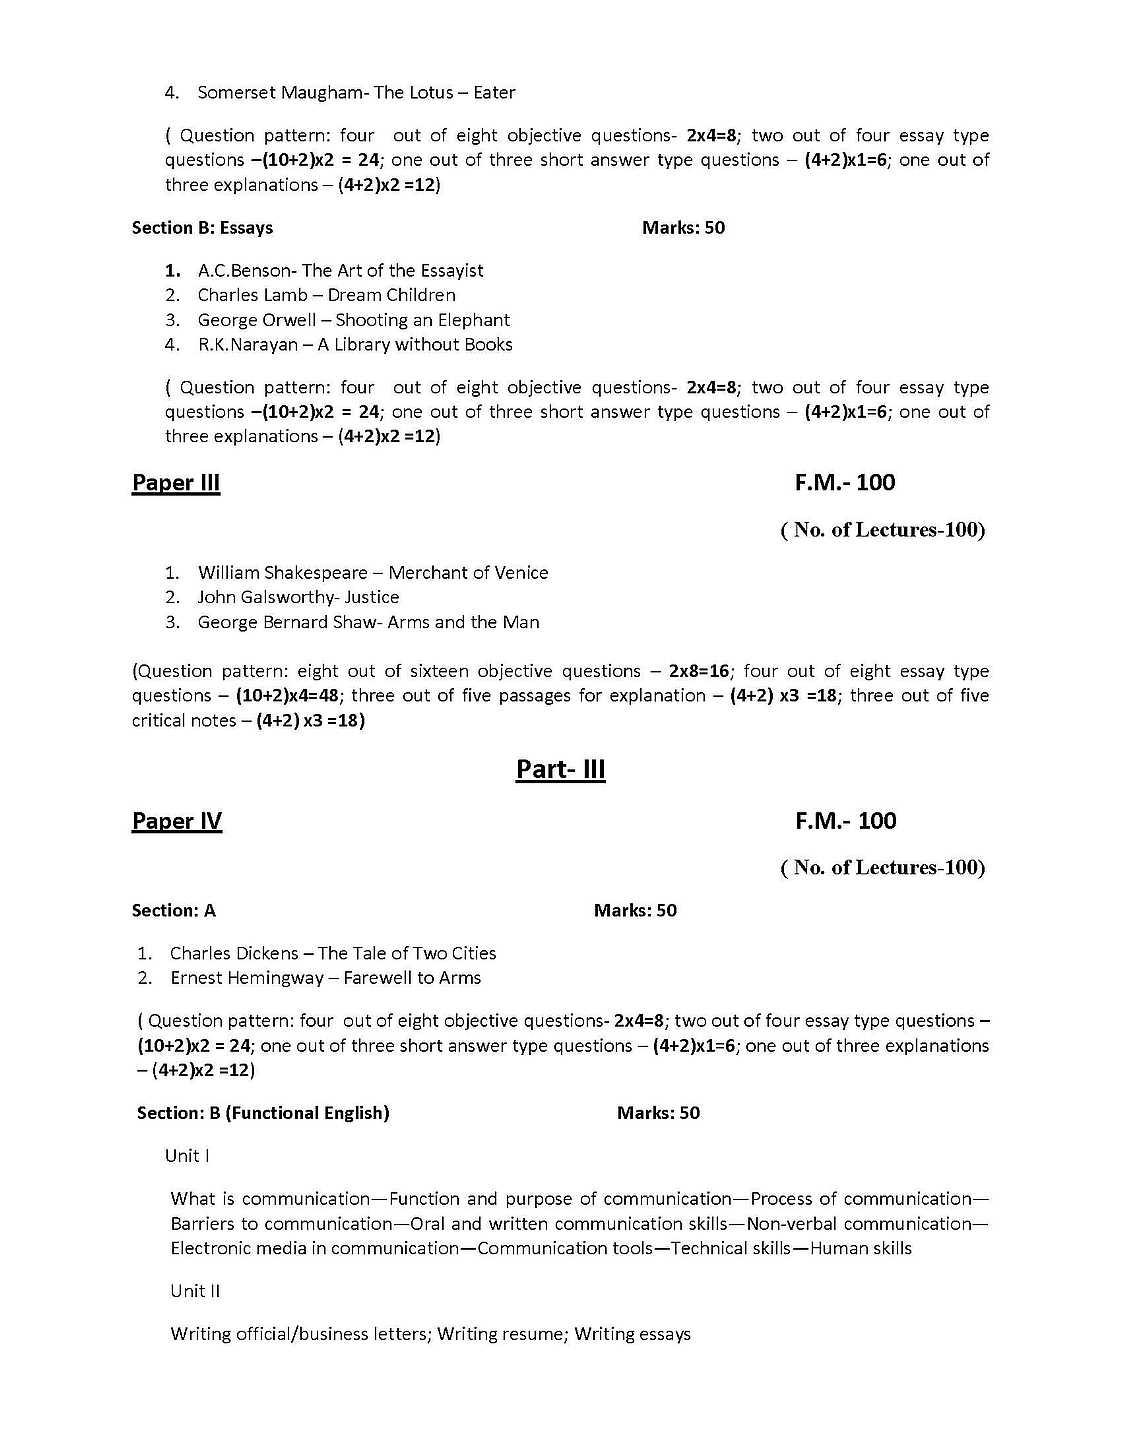 english pass syllabus of burdwan university eduvark burdwan university ba english syllabus